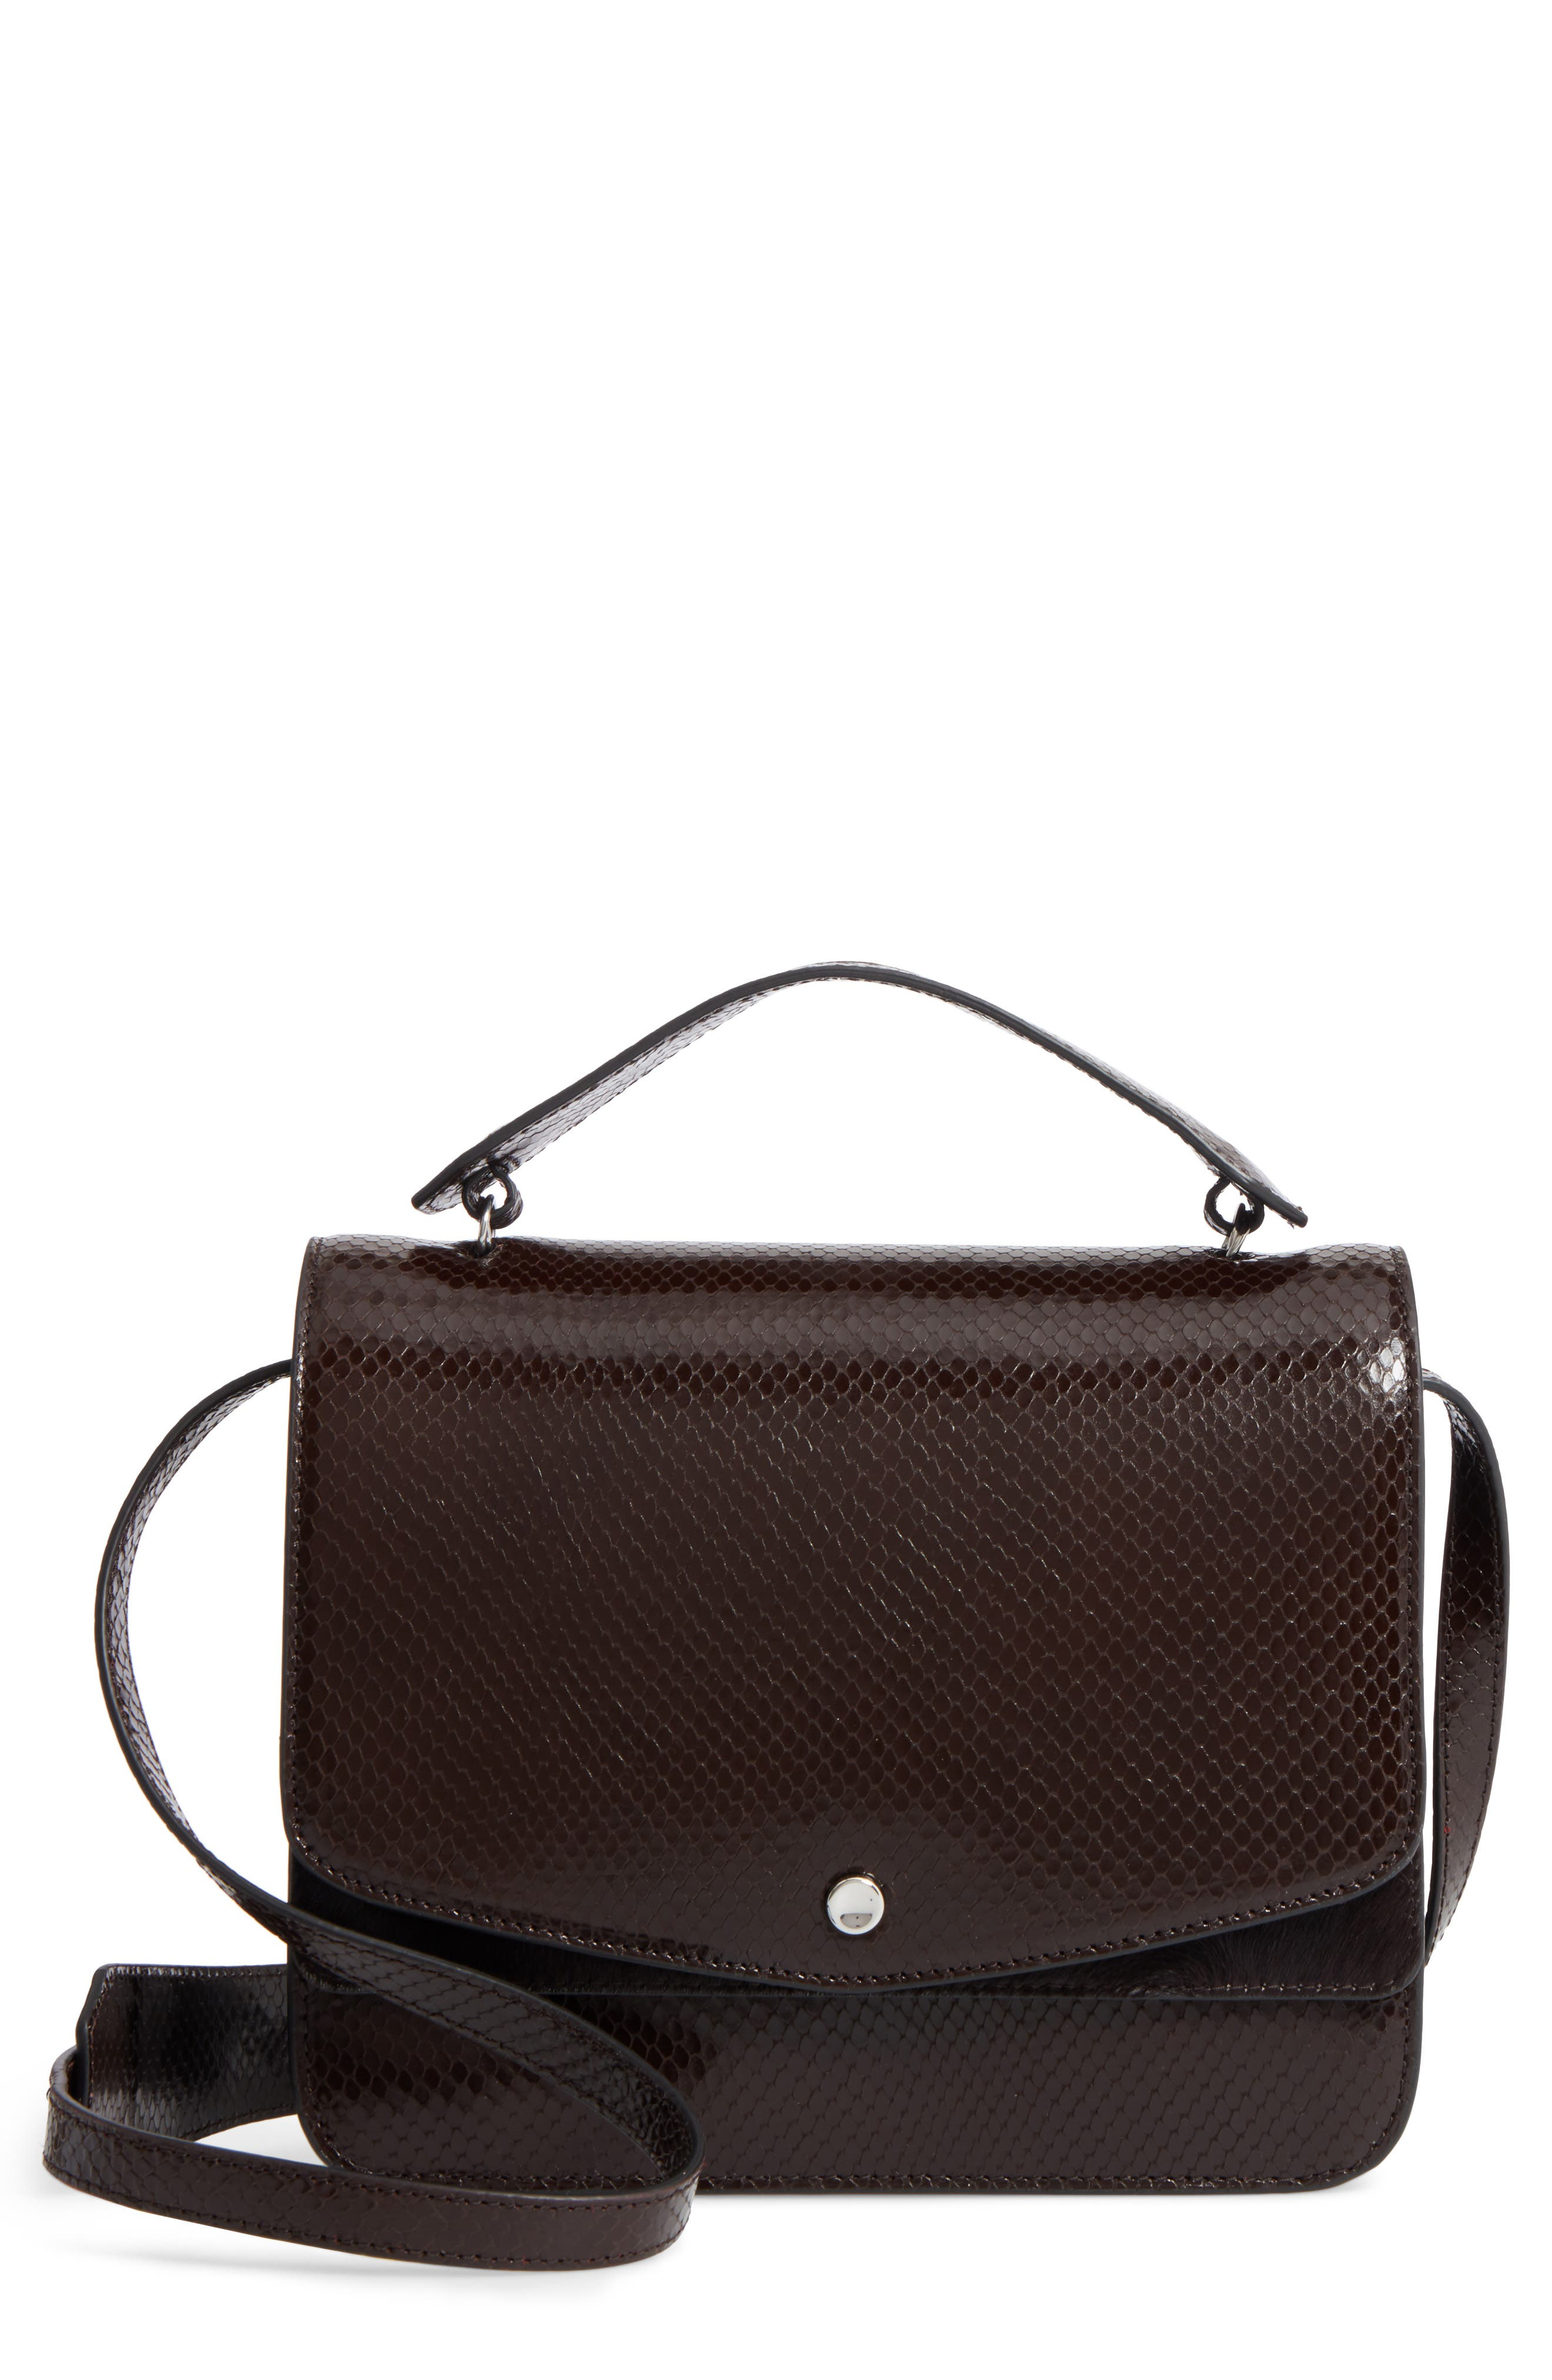 Elizabeth and James Eloise Genuine Calf Hair & Leather Shoulder Bag